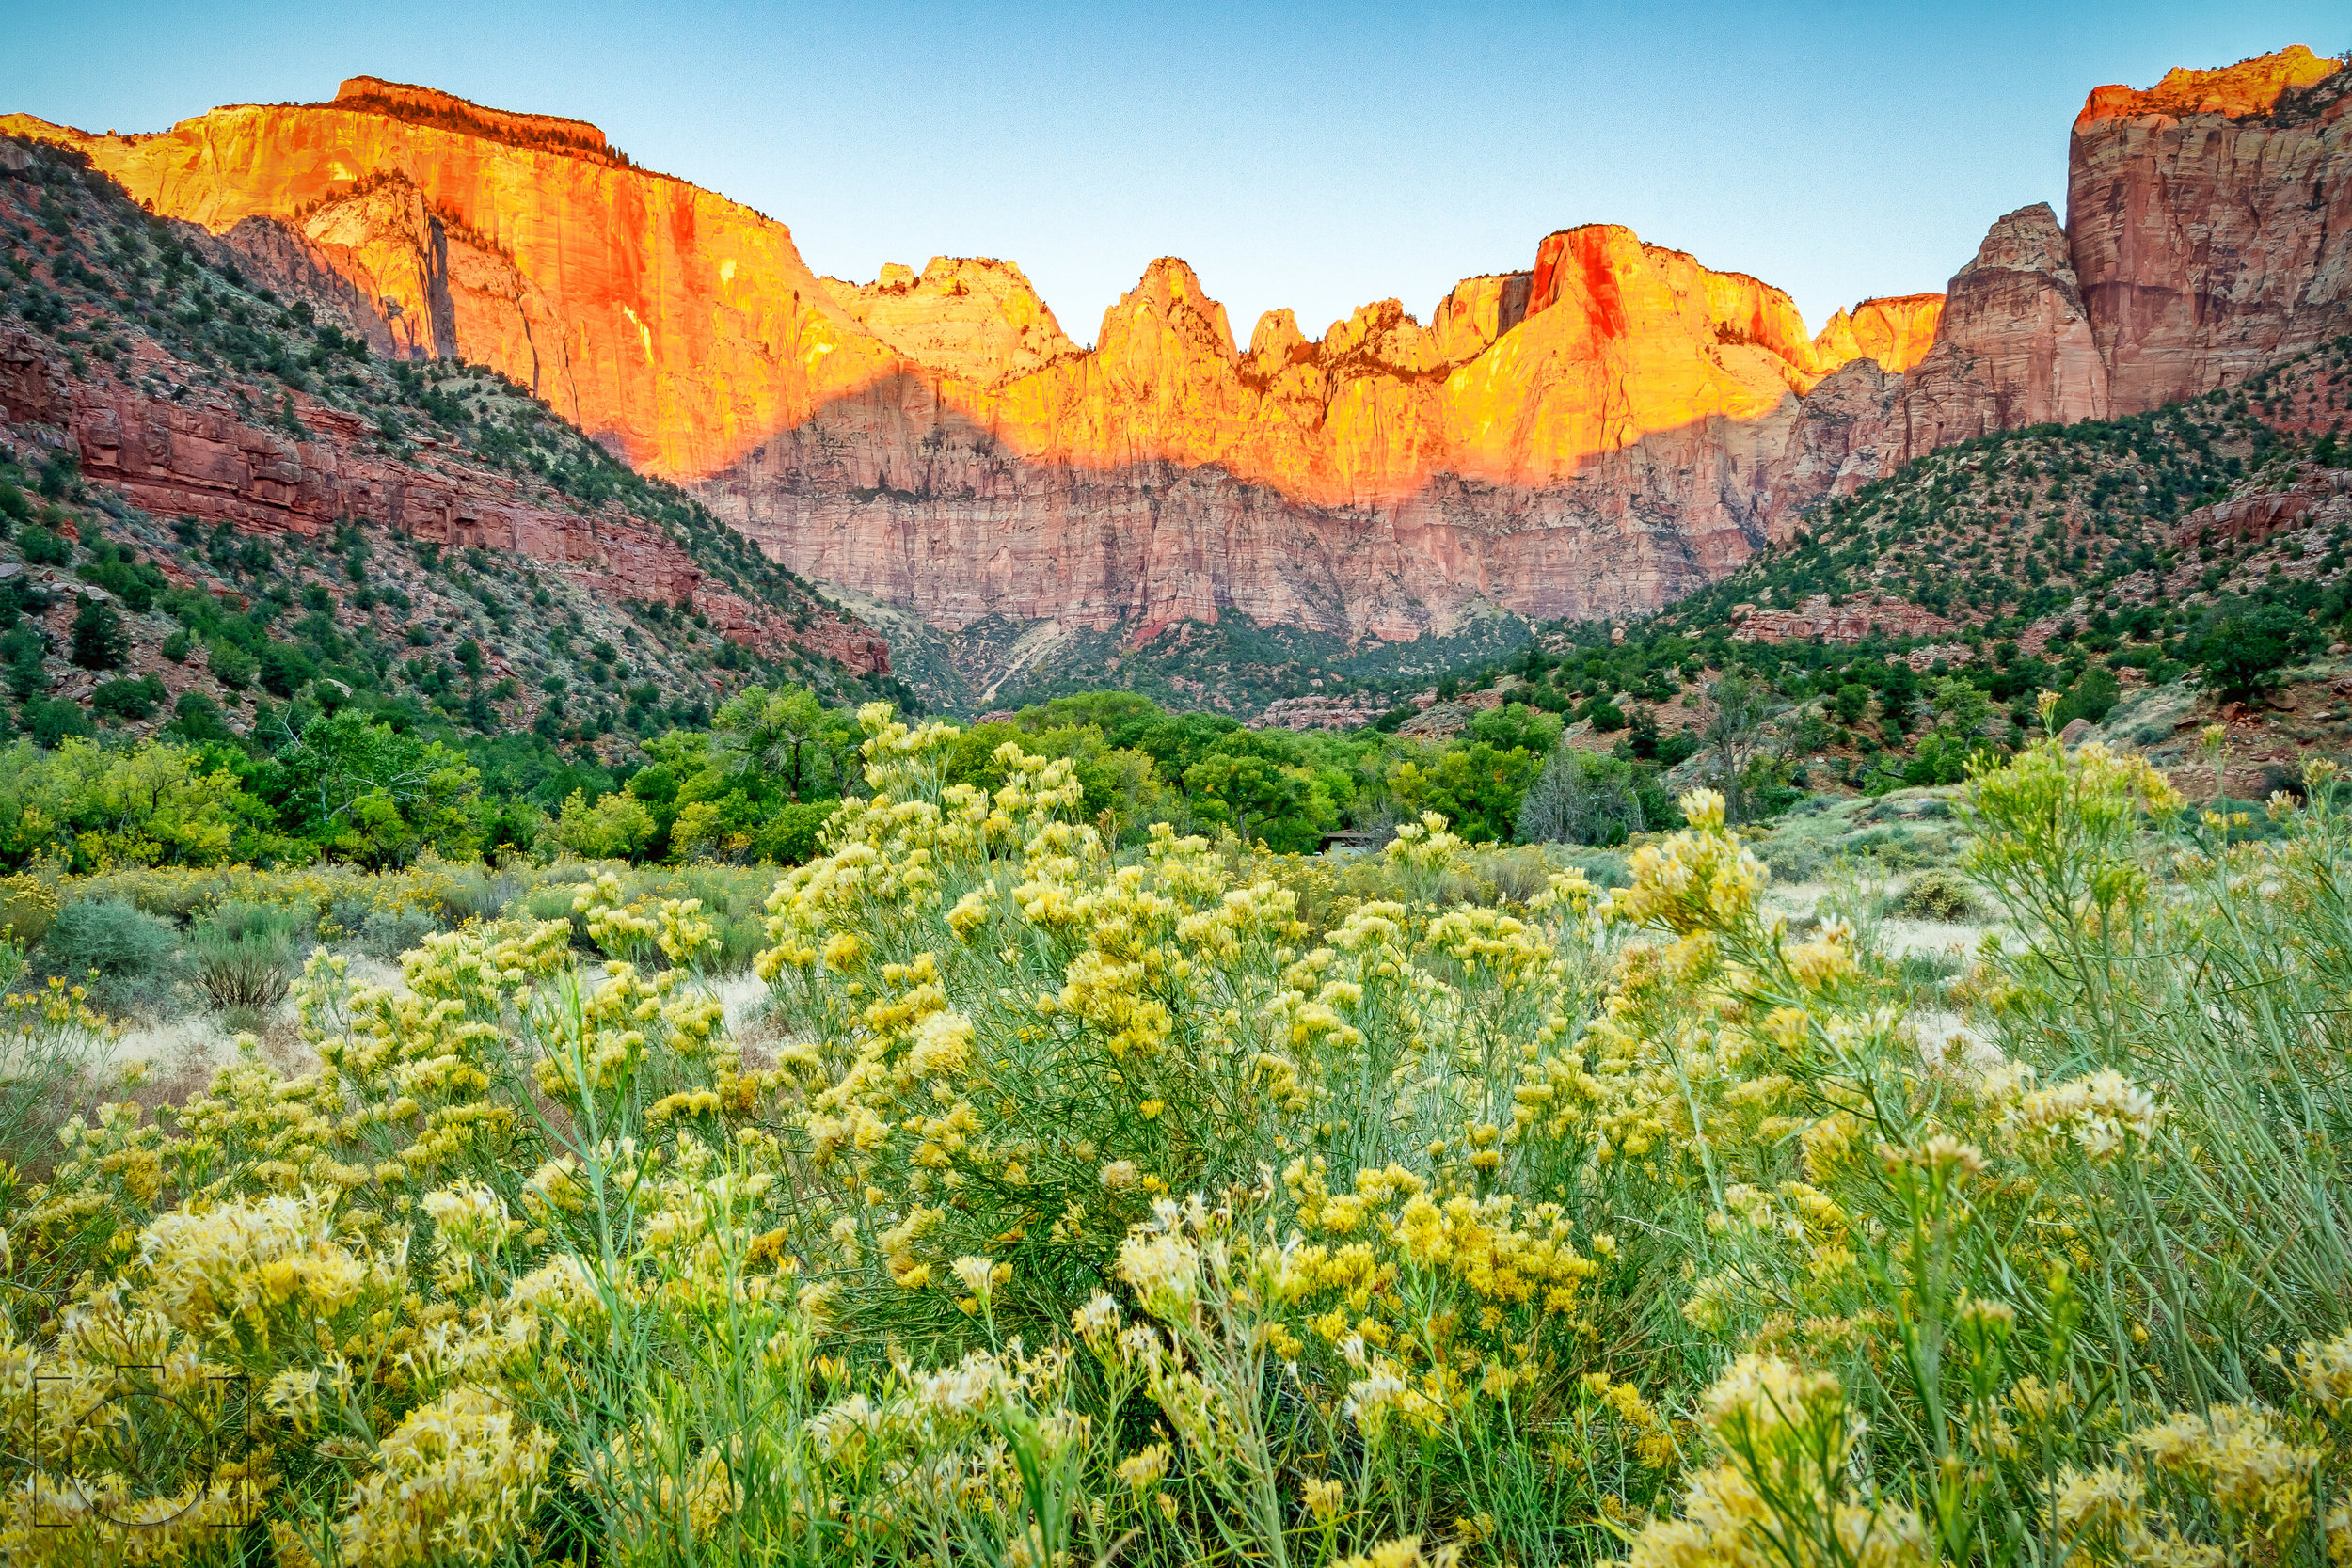 Sunrise at the Shrine of the Ages - Zion National Park